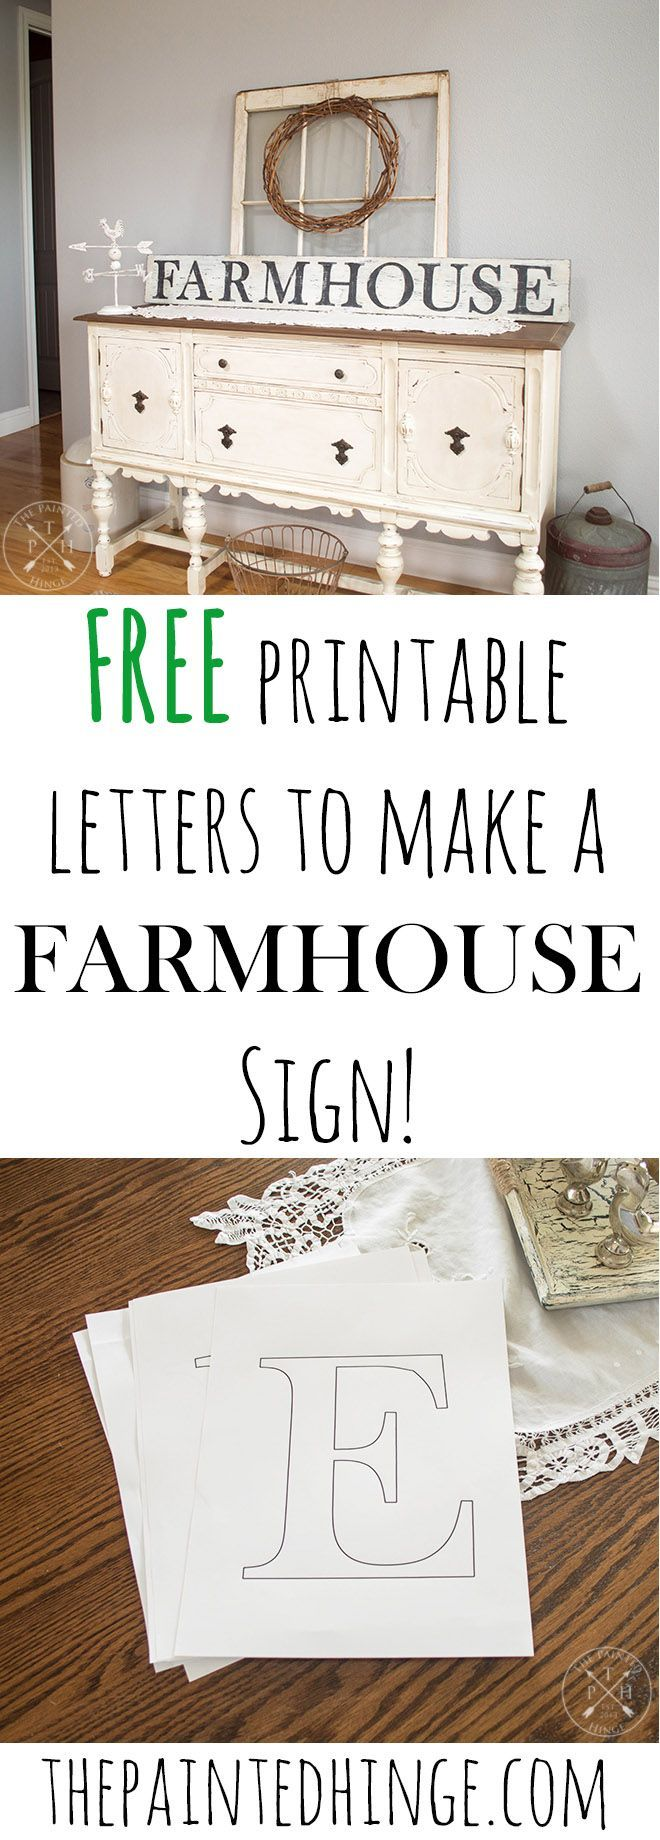 photo about Printable Letters for Signs identify Totally free Printable Letters Towards Produce A Farmhouse Indicator! Farmhouse